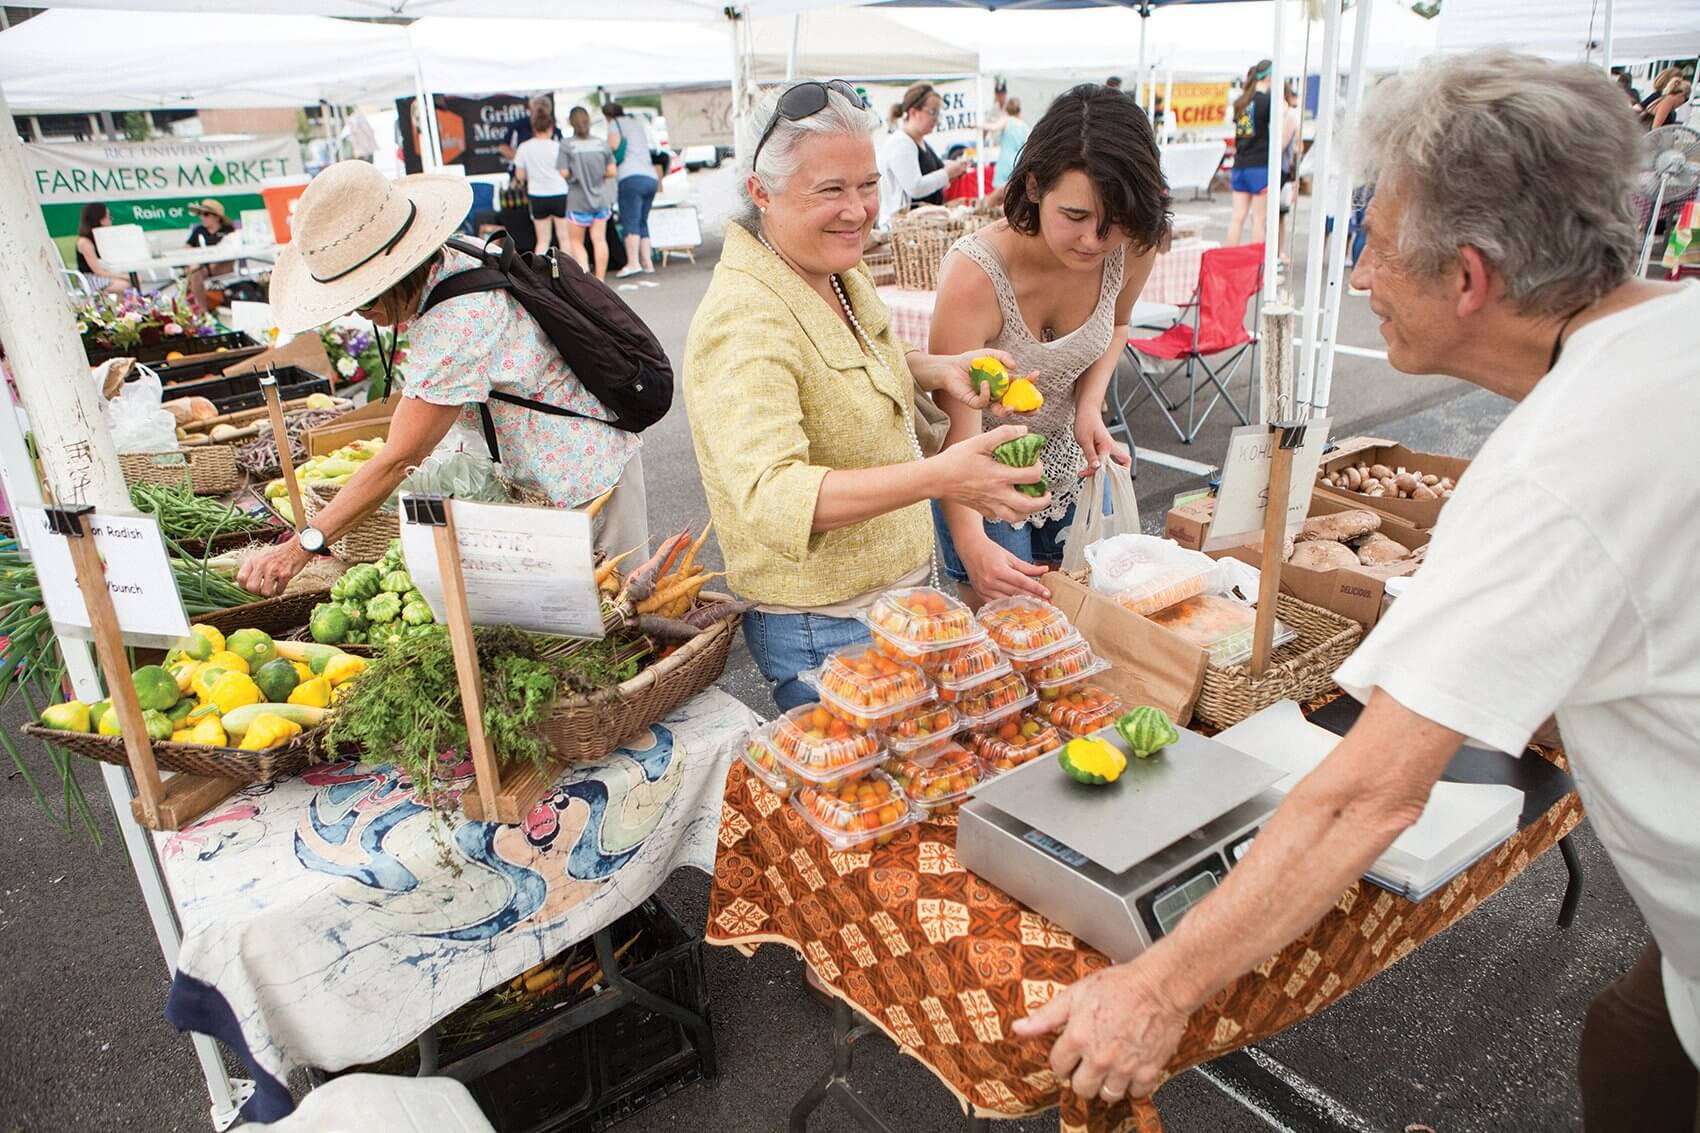 Cas Van Woerden, owner of the certified organic Animal Farm based in Cat Spring, Texas, chats with customers at the Rice University Farmers Market.